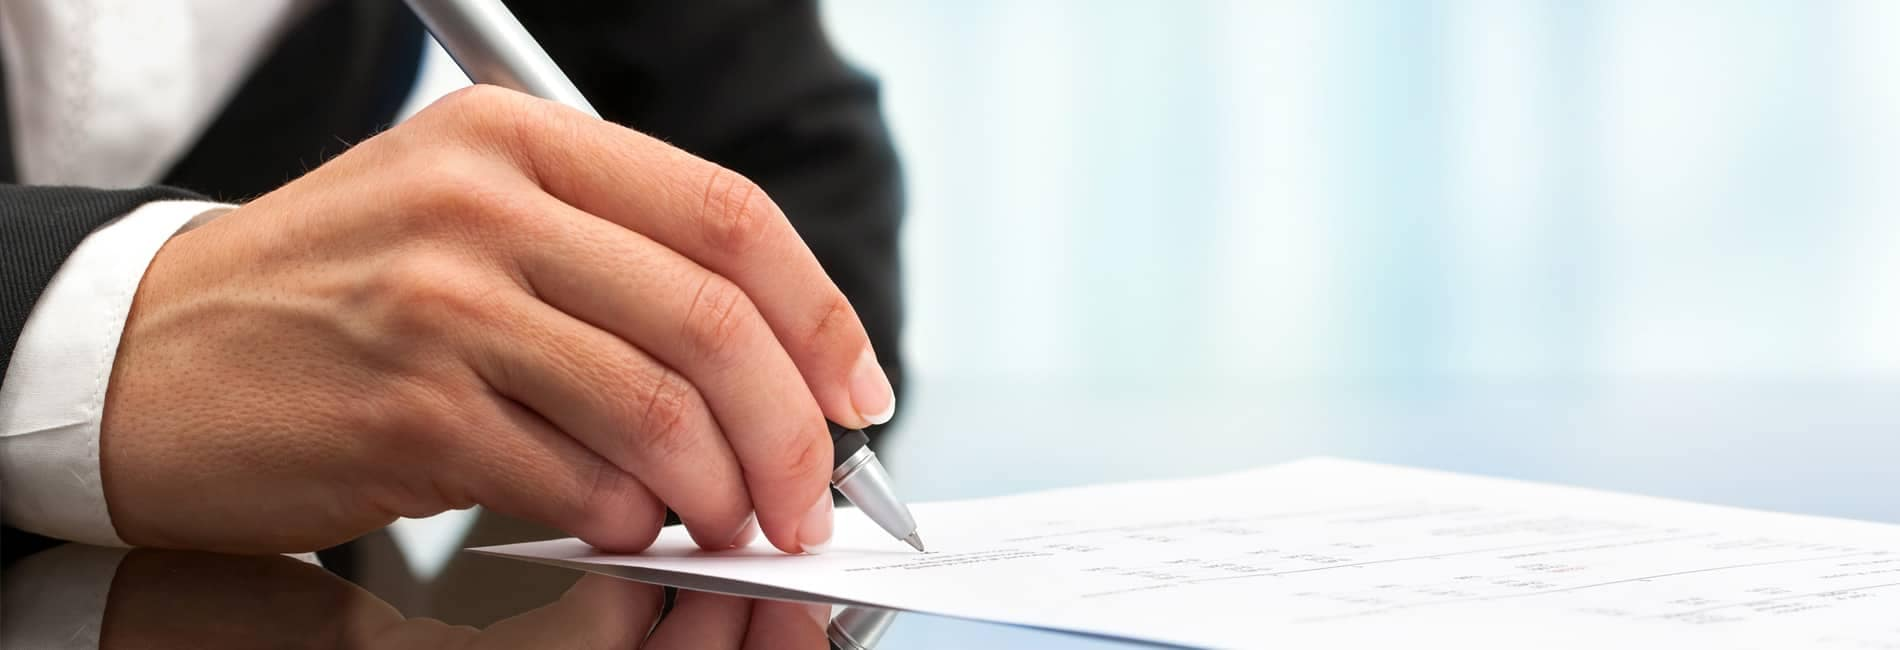 man signs financial document